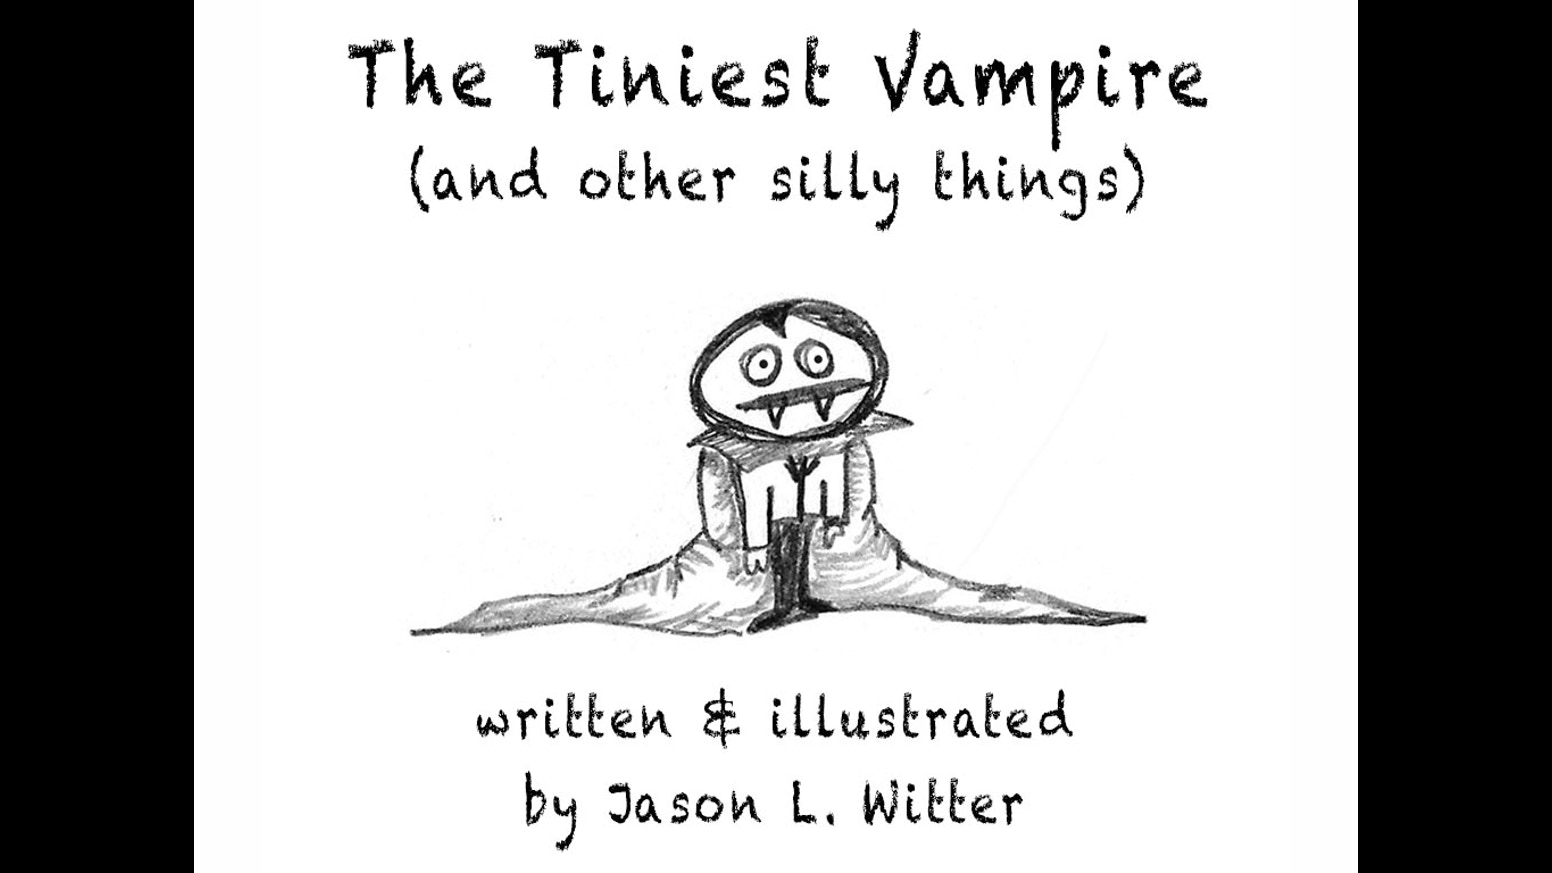 The Tiniest Vampire (and other silly things) by Jason L